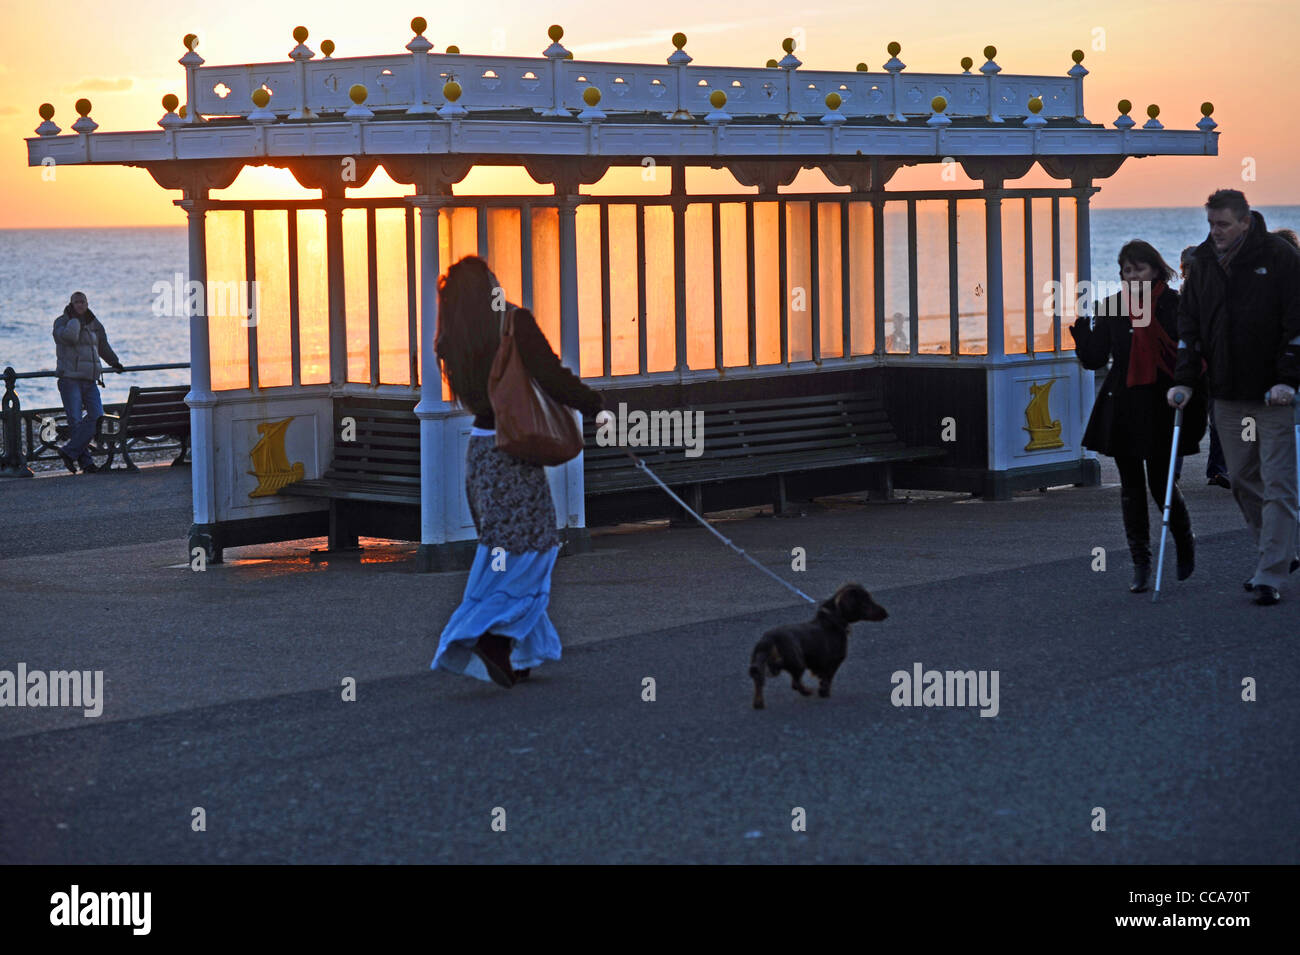 People out walking past a shelter during a spectacular sunset along Hove seafront Sussex UK Stock Photo